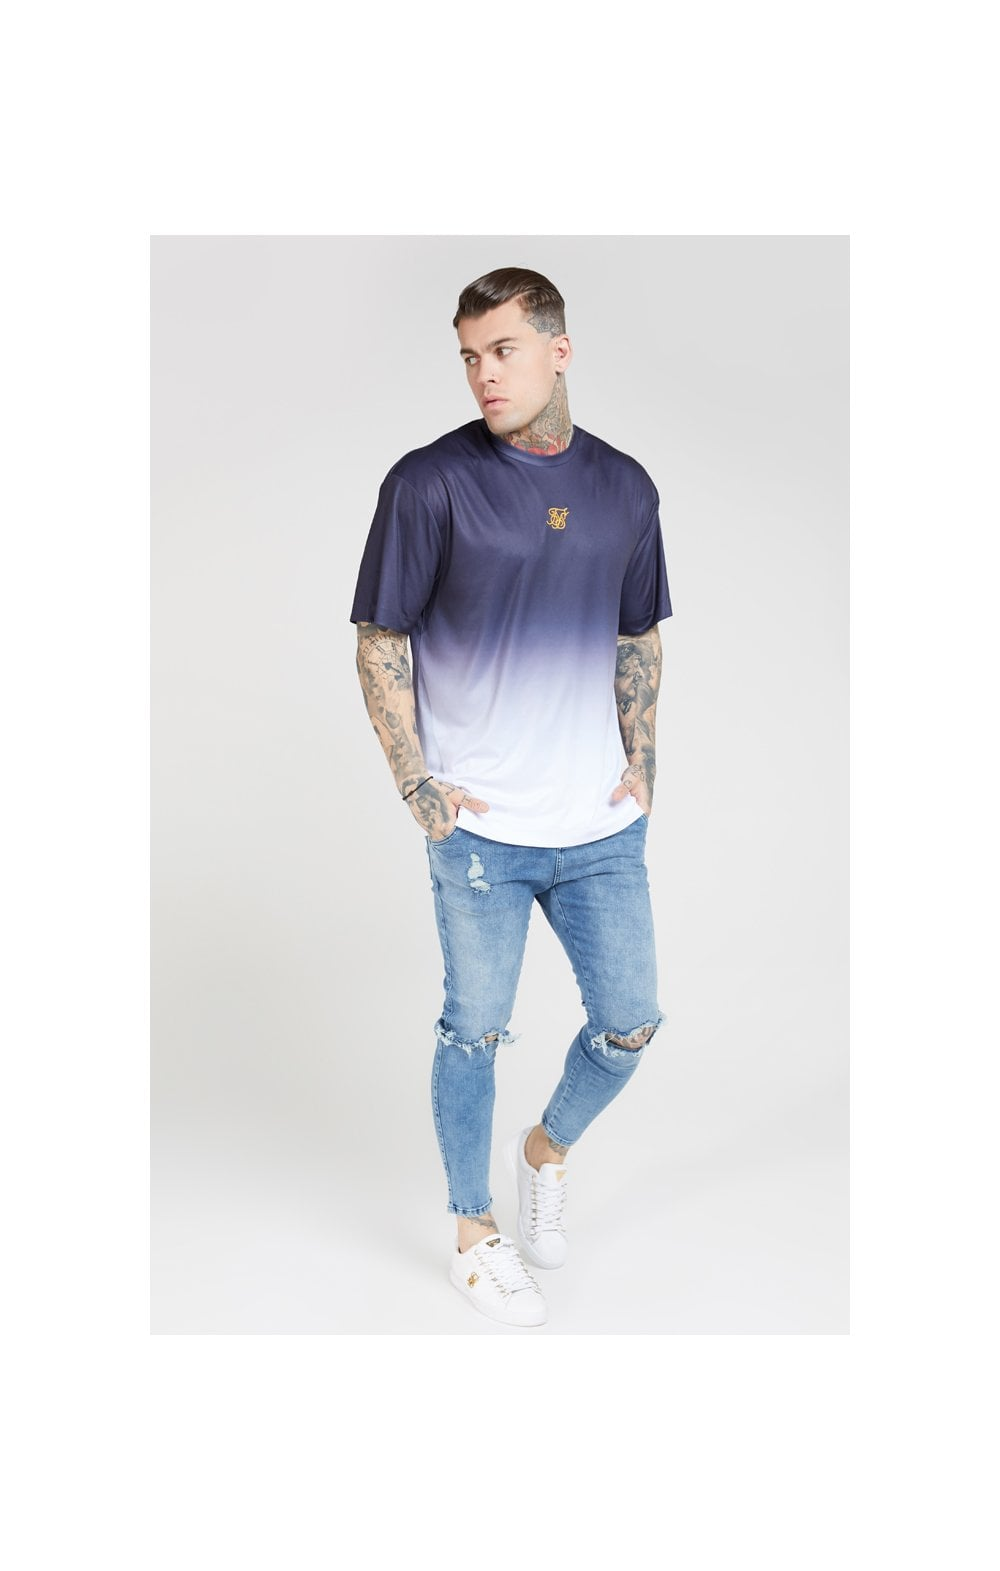 Load image into Gallery viewer, SikSilk S/S Essential Tee - Navy & White (2)